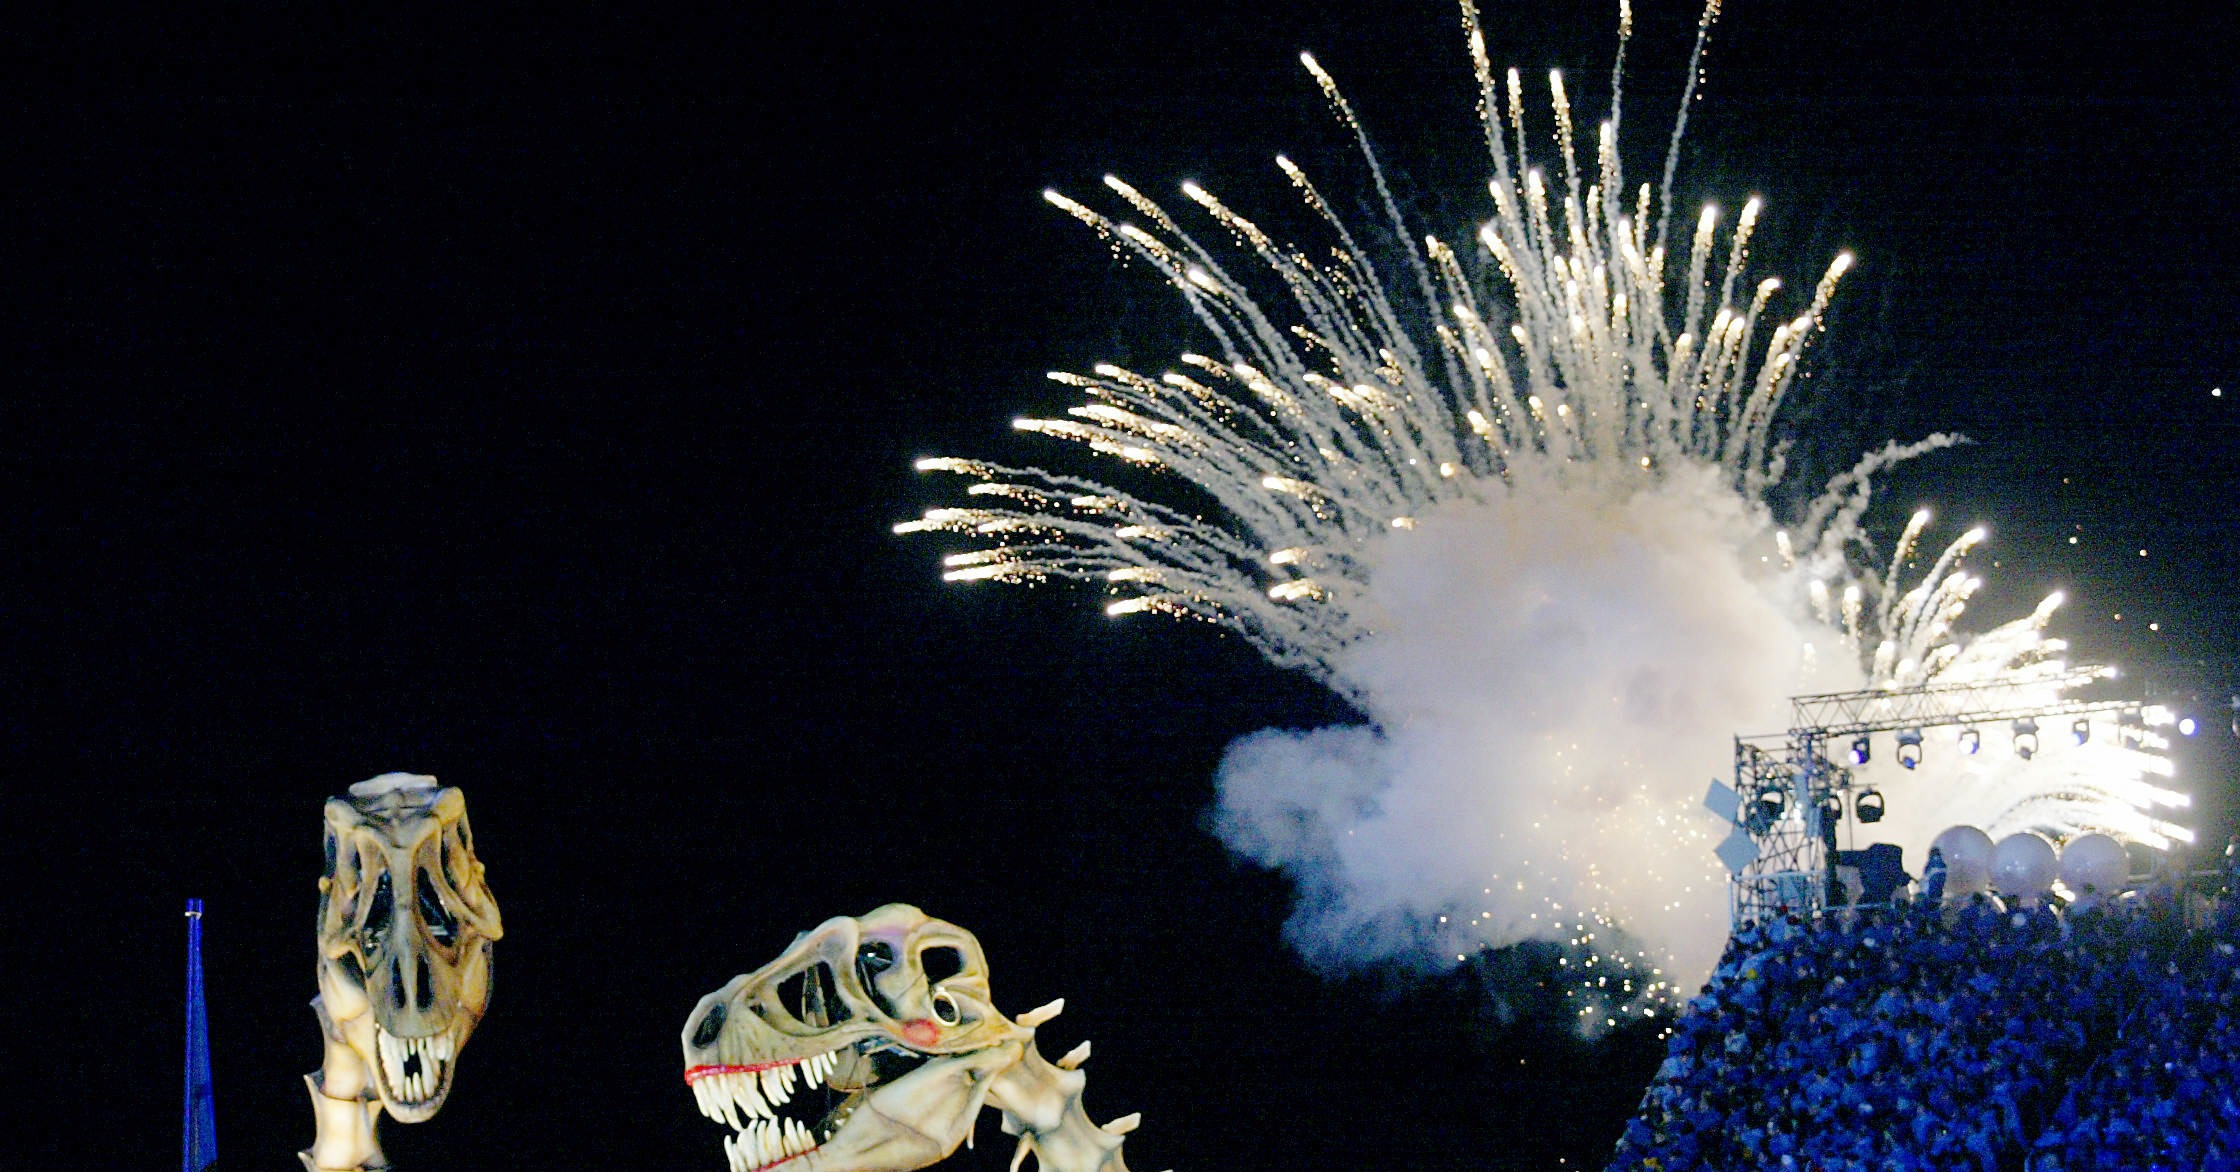 No Fireworks Show Is Complete Without Dinosaur Skeletons